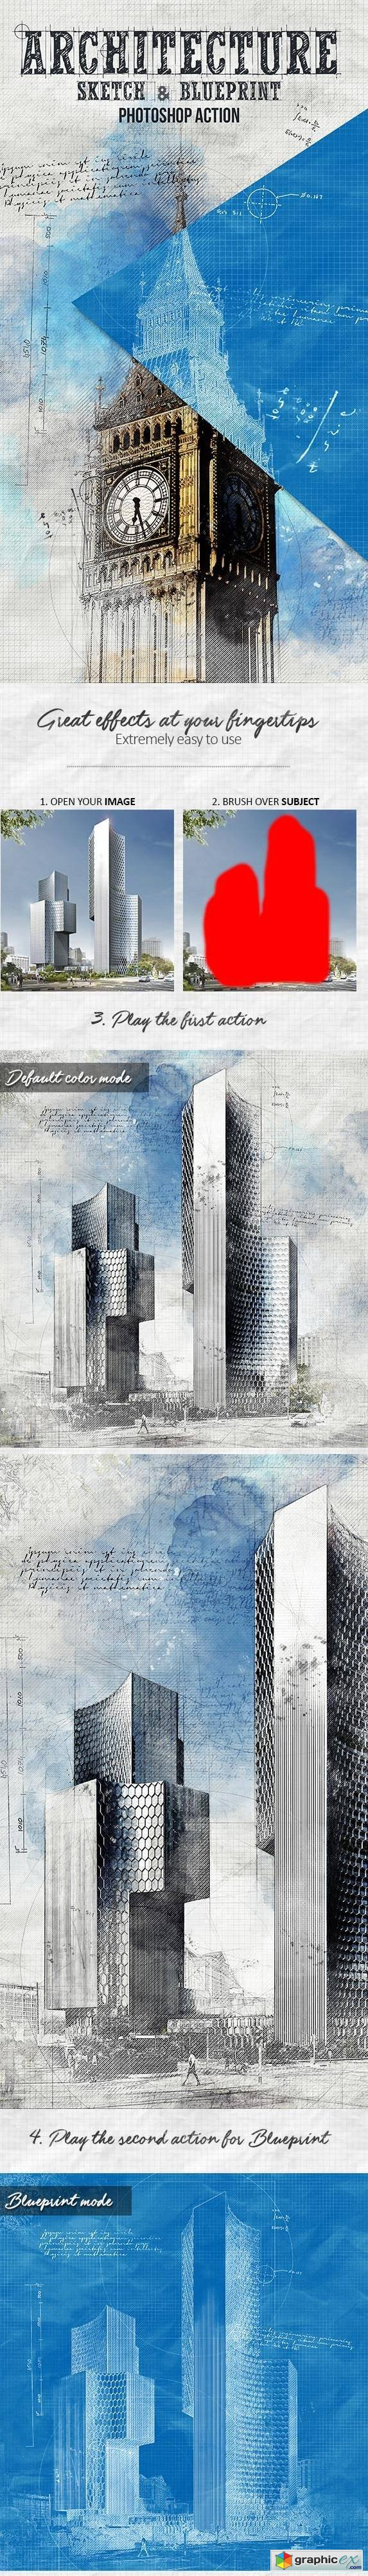 Architecture sketch and blueprint photoshop action free download architecture sketch and blueprint photoshop action malvernweather Image collections